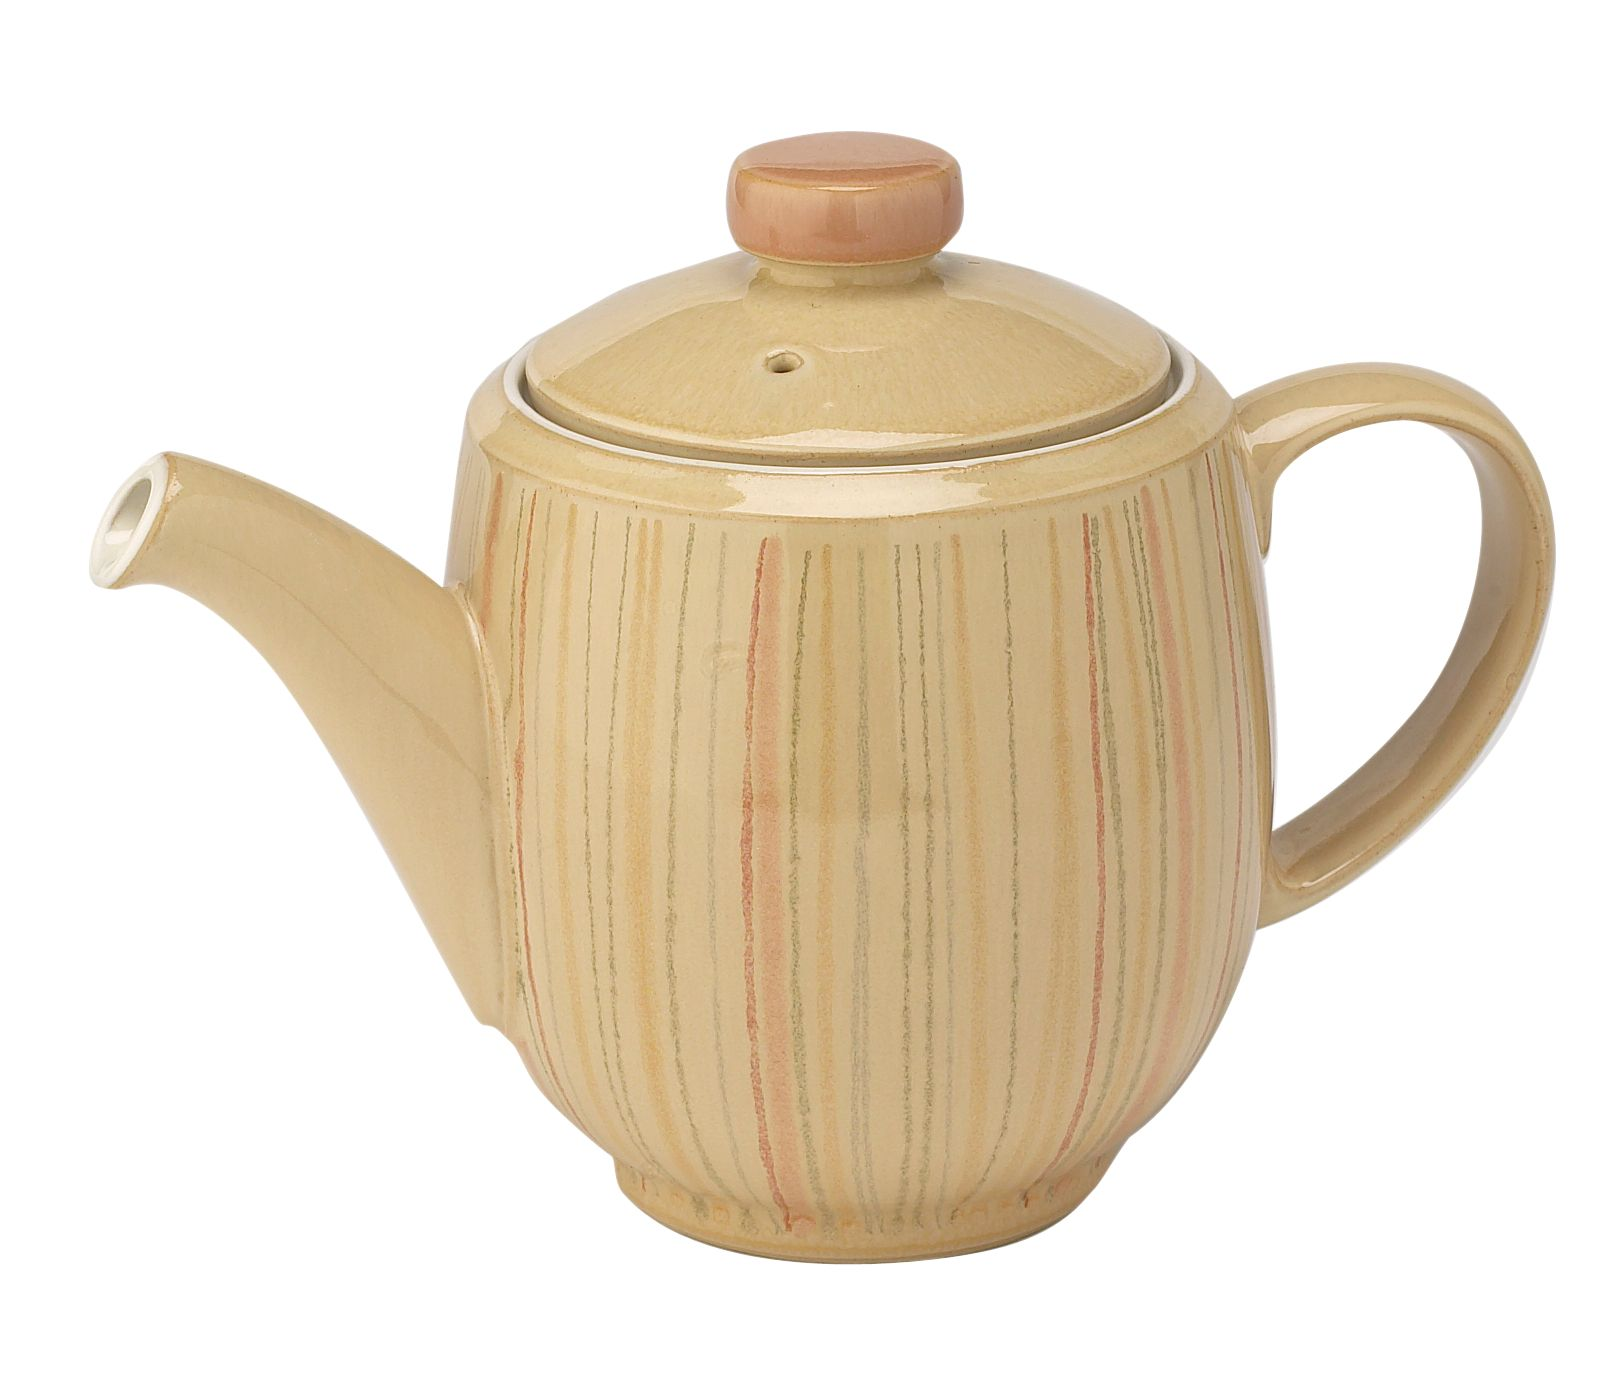 Caramel stripes teapot